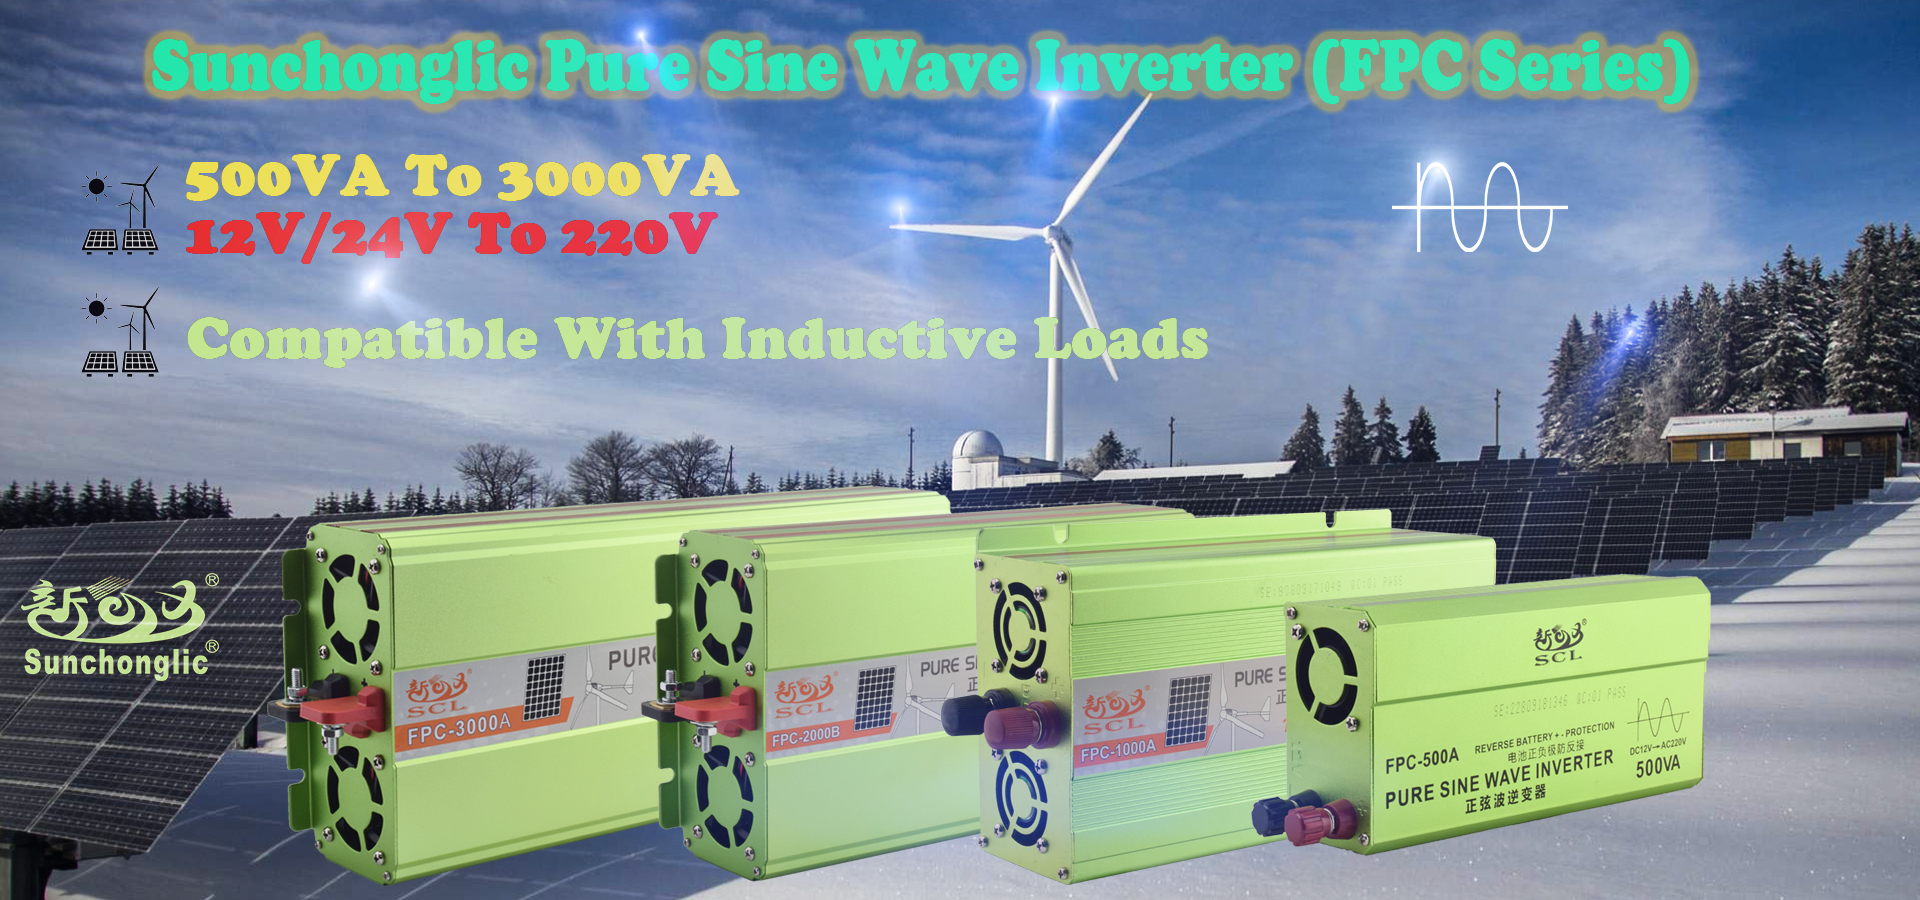 Pure sine wave inverter 350VA to 3000VA